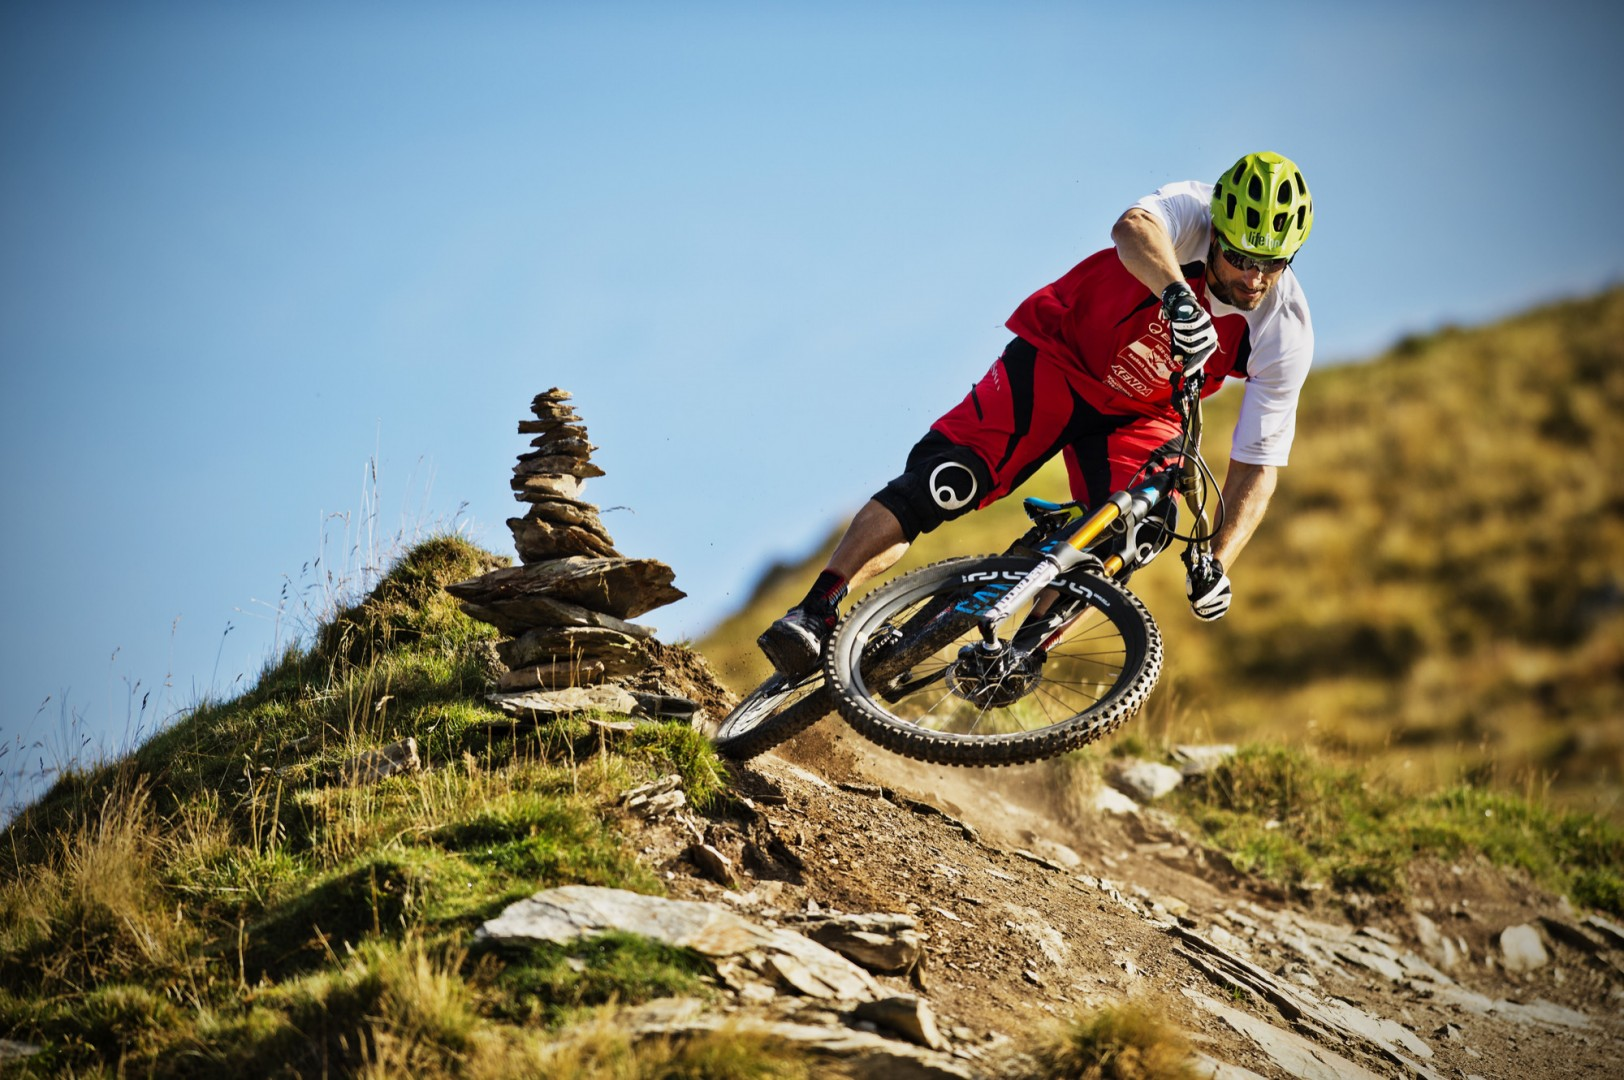 Mountainbiken, Downhill, Cross Country im Bikecircus Saalbach-Hinterglemm